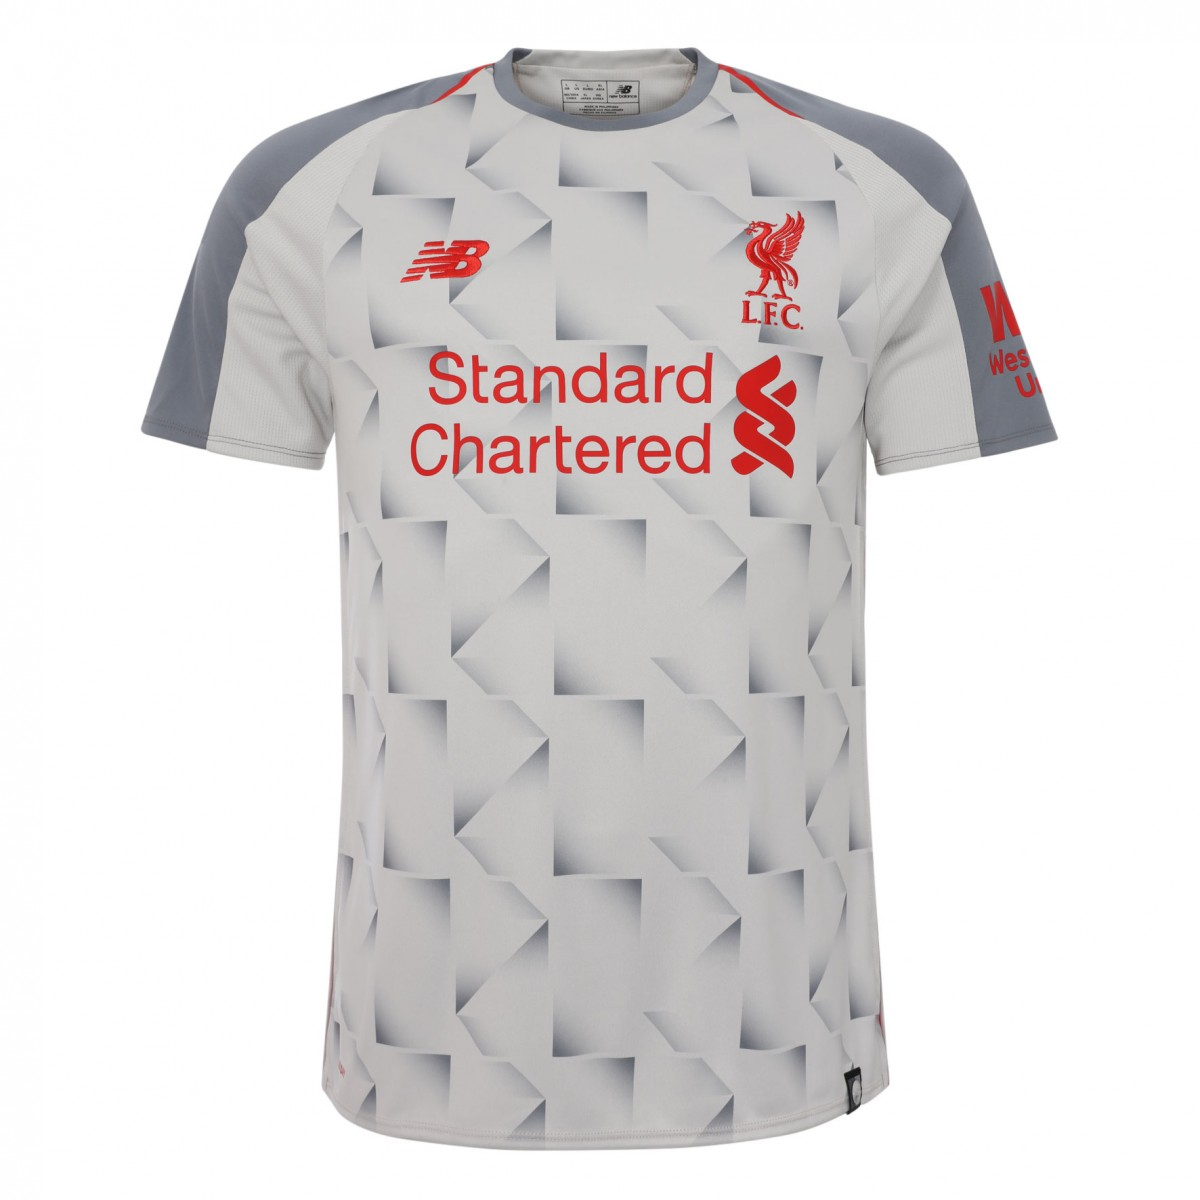 buy online 819bf 11630 Liverpool FC Reveal Their 2018/19 Third Kit by New Balance